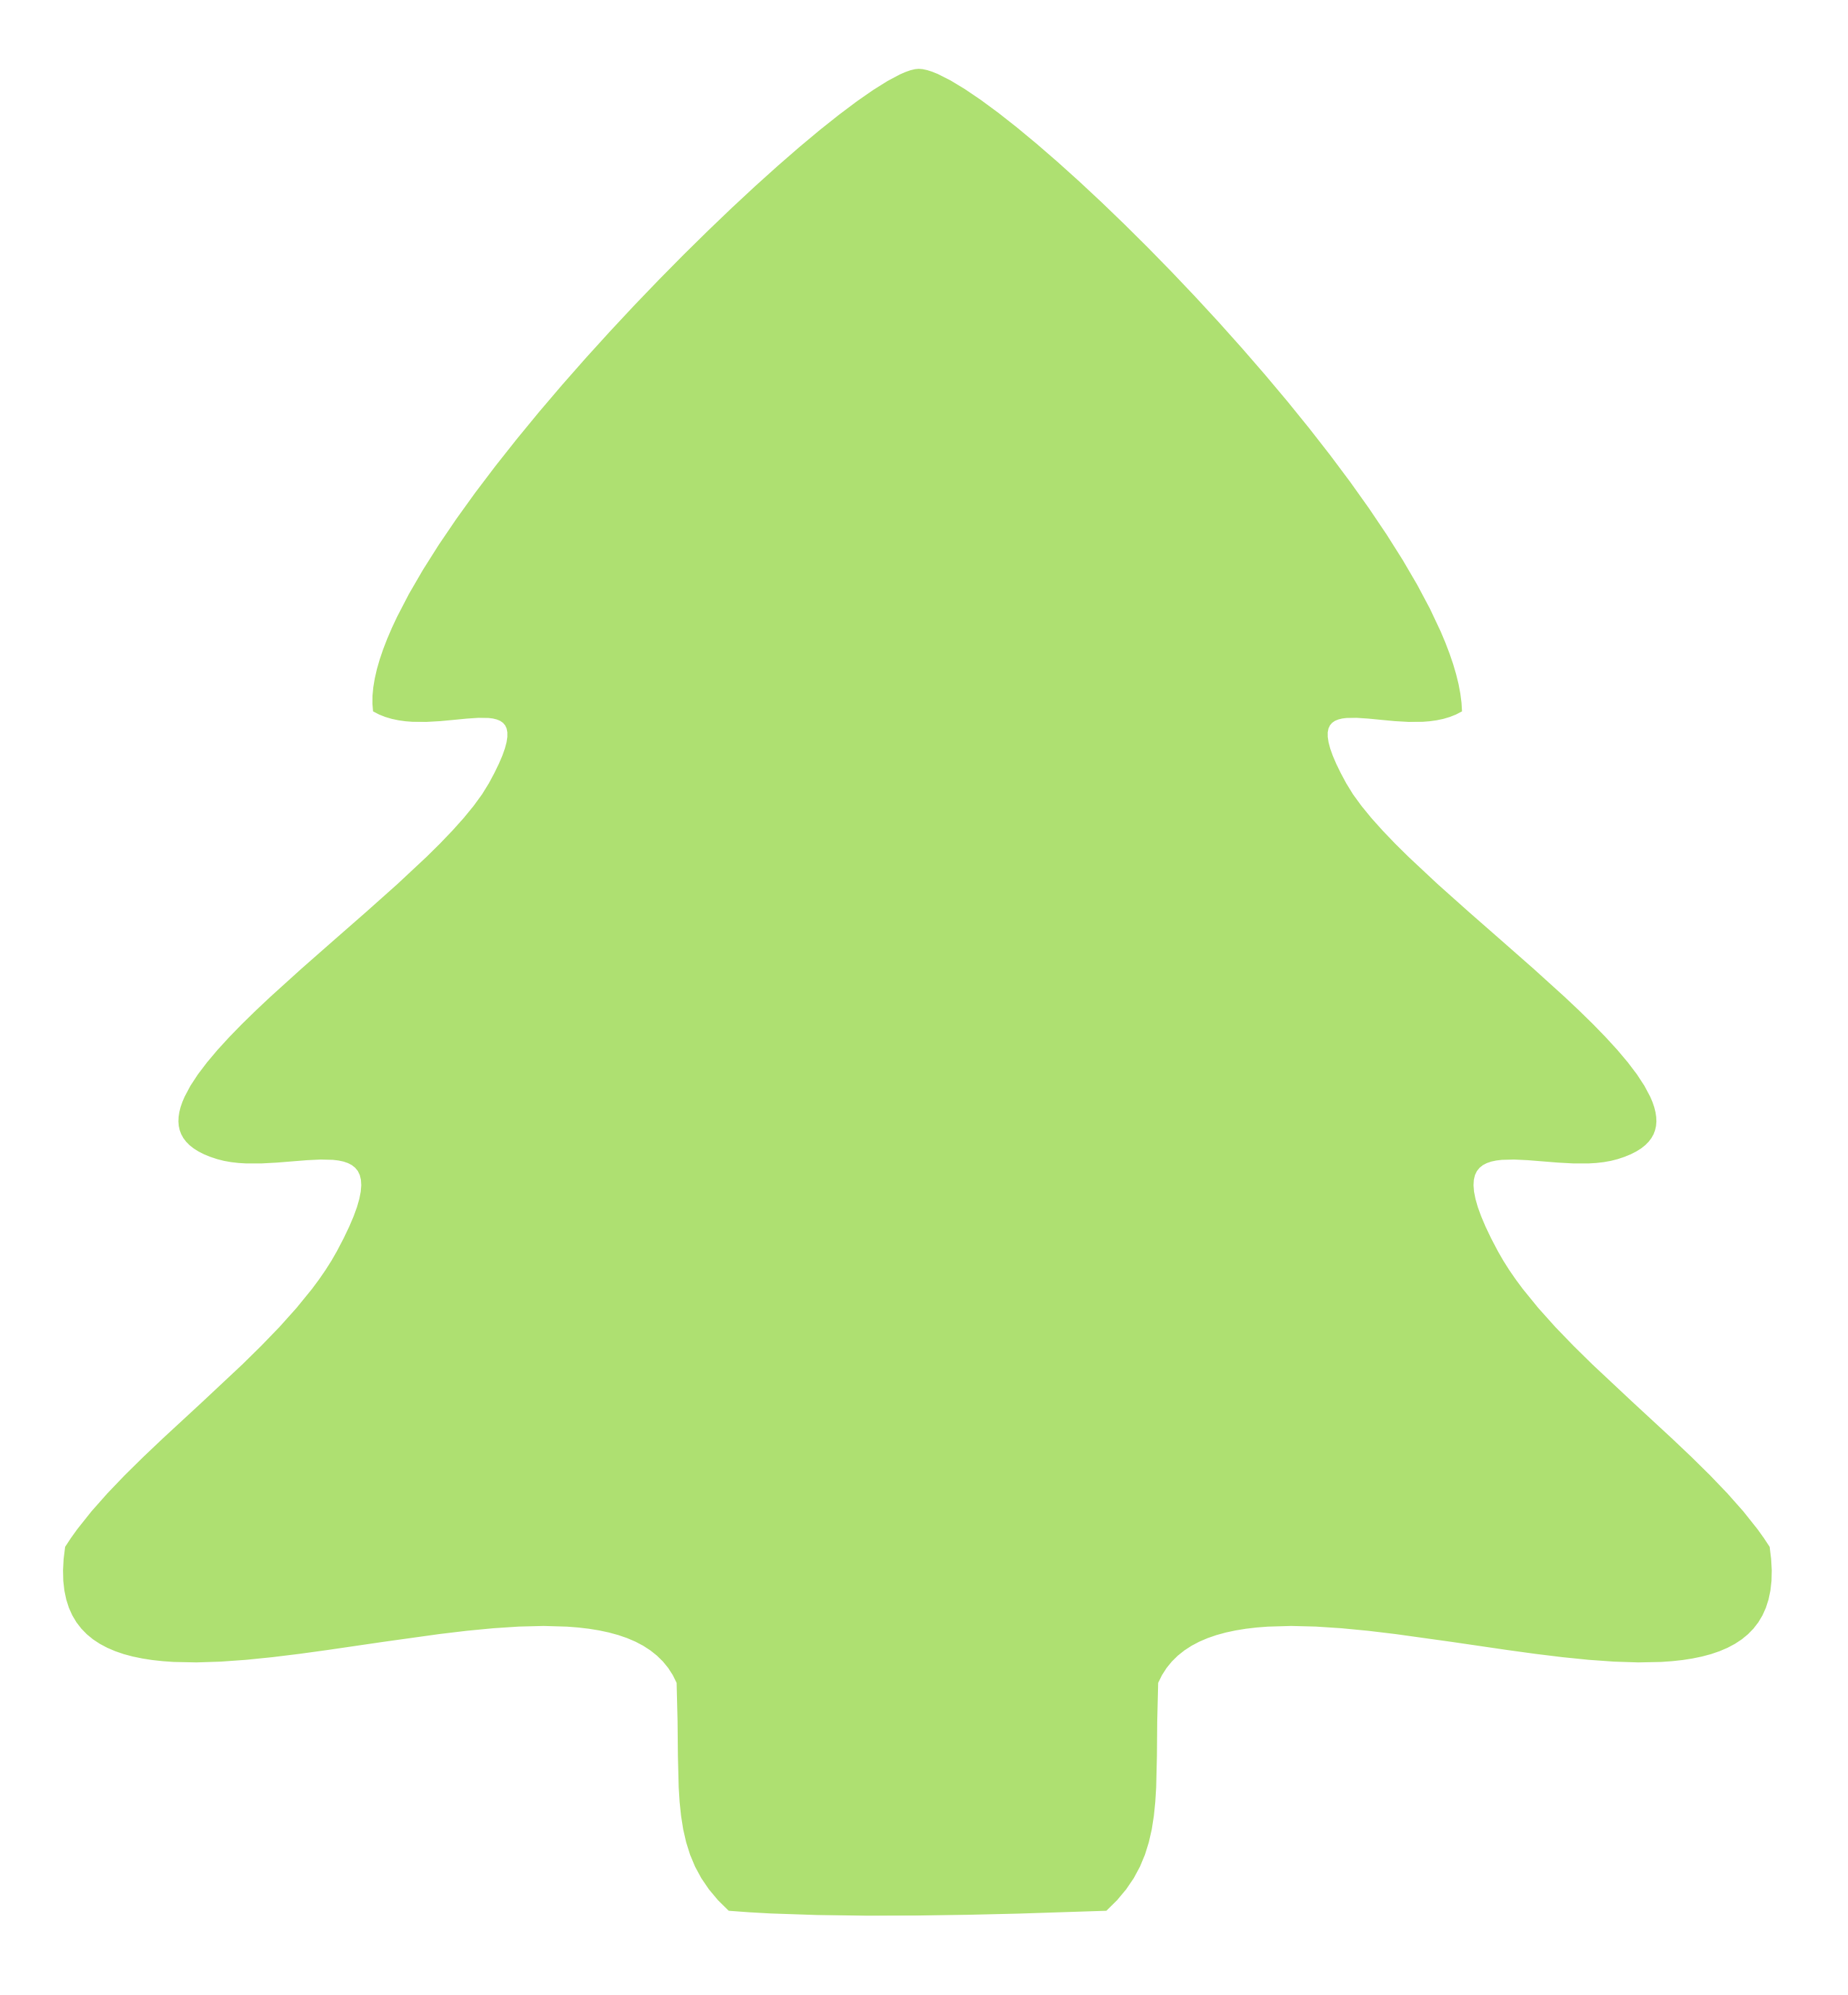 Christmas Tree clipart simple Free Art Tree Clip Images